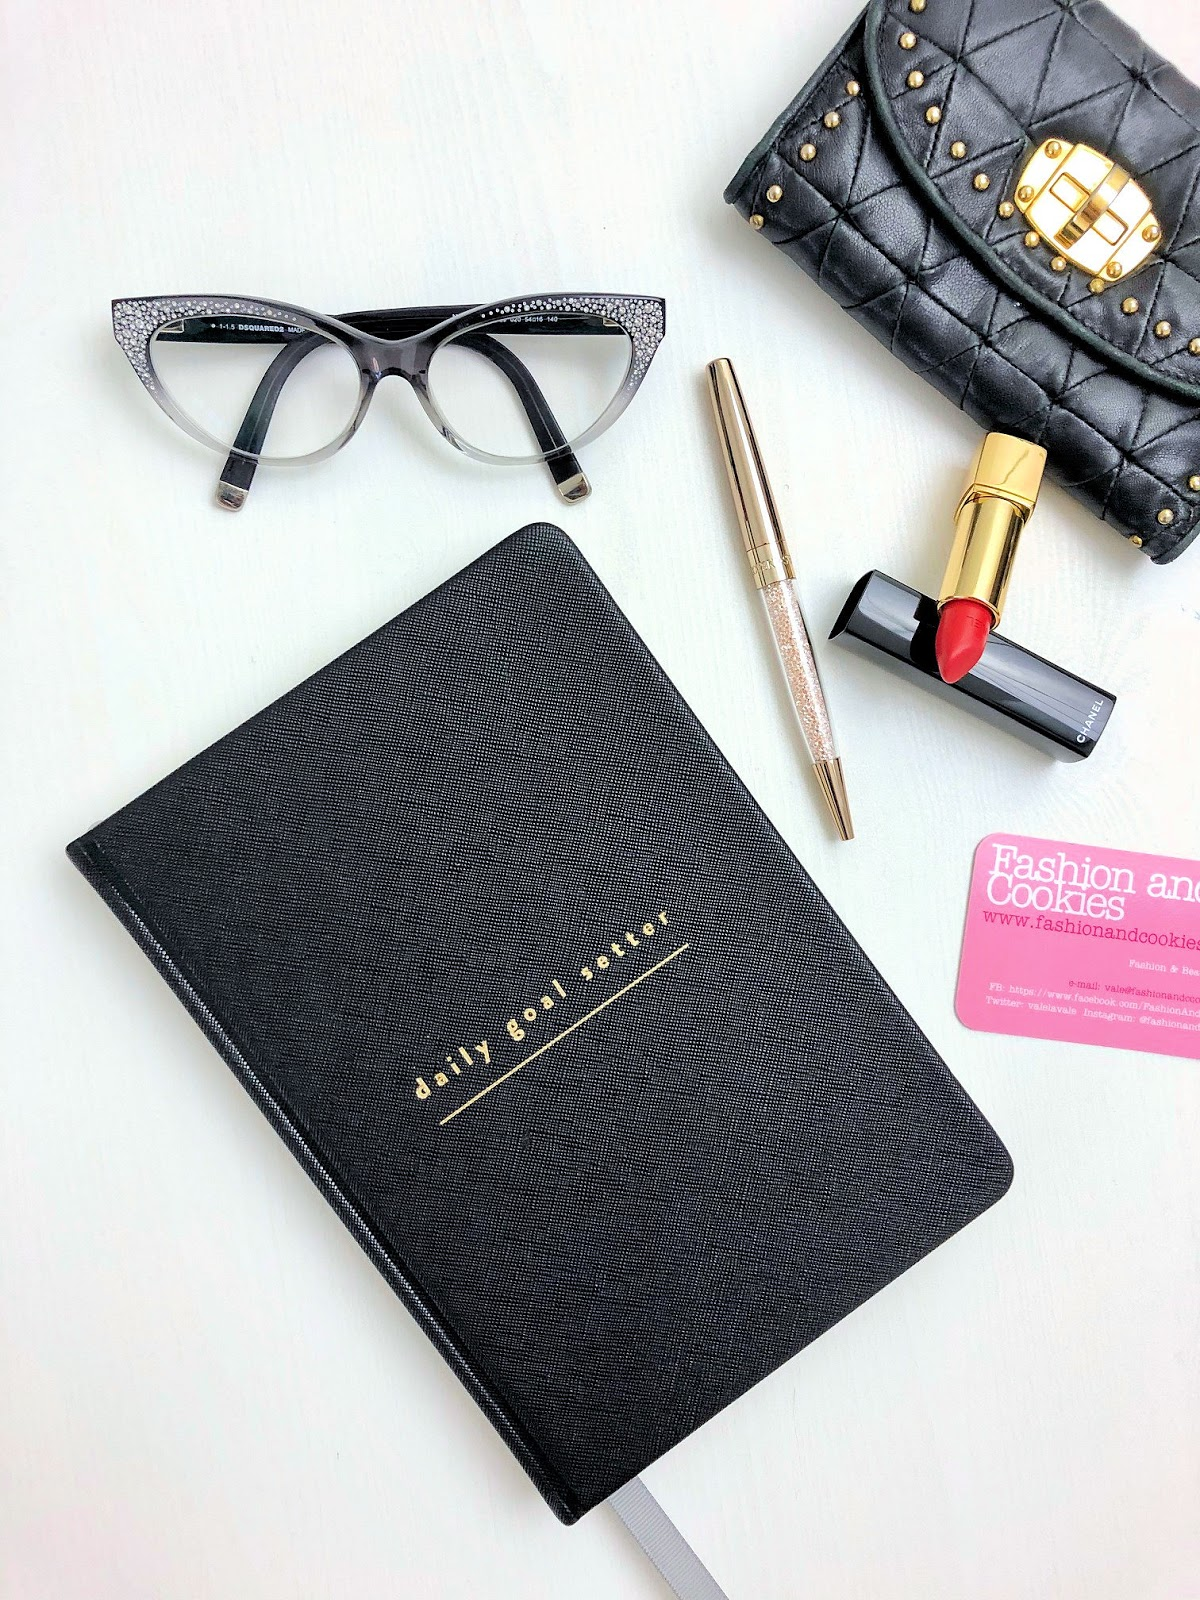 Daily Goal Setter Planner review on Fashion and Cookies fashion blog